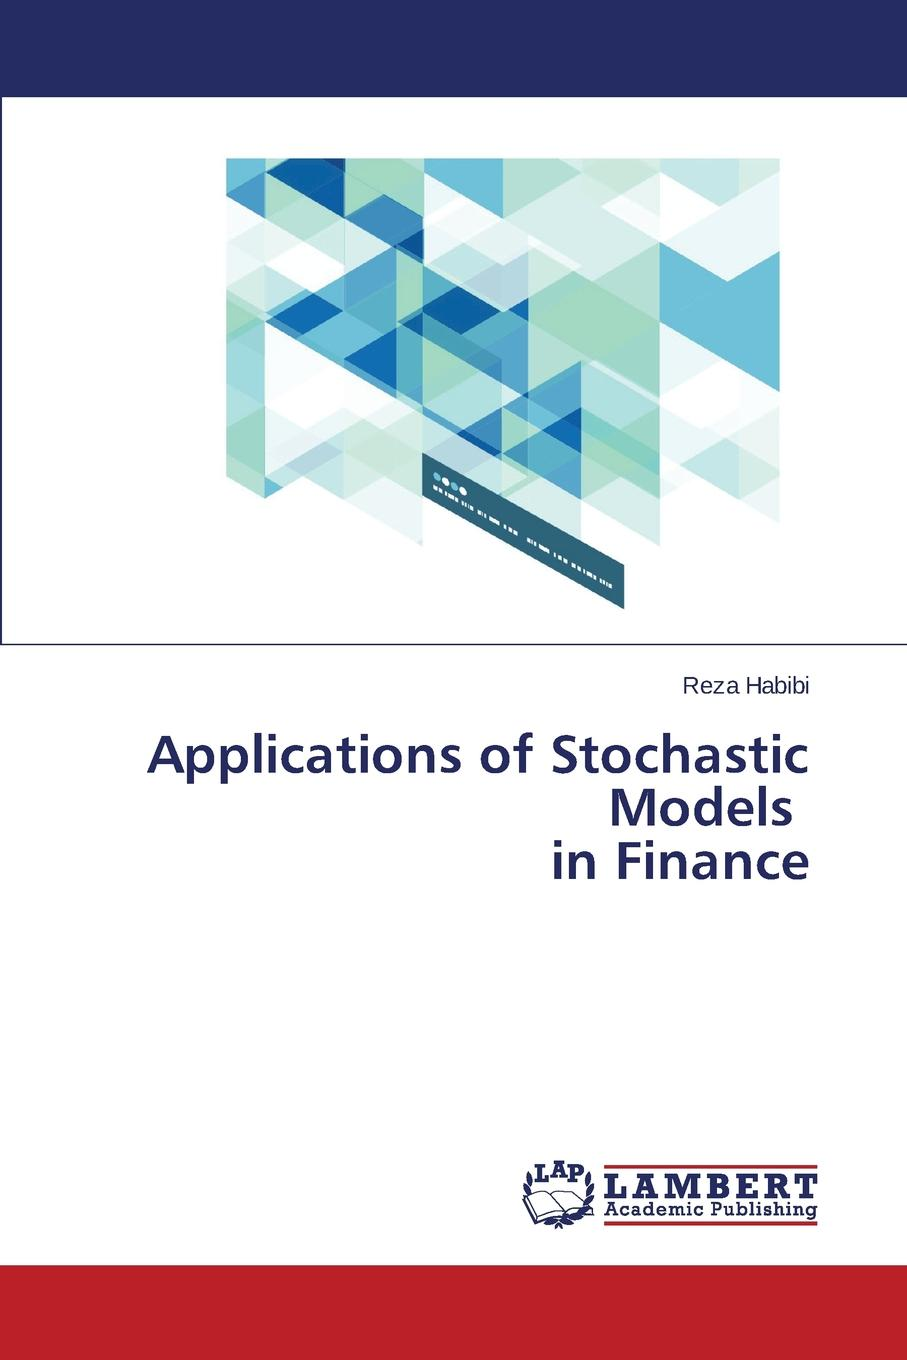 все цены на Habibi Reza Applications of Stochastic Models in Finance онлайн